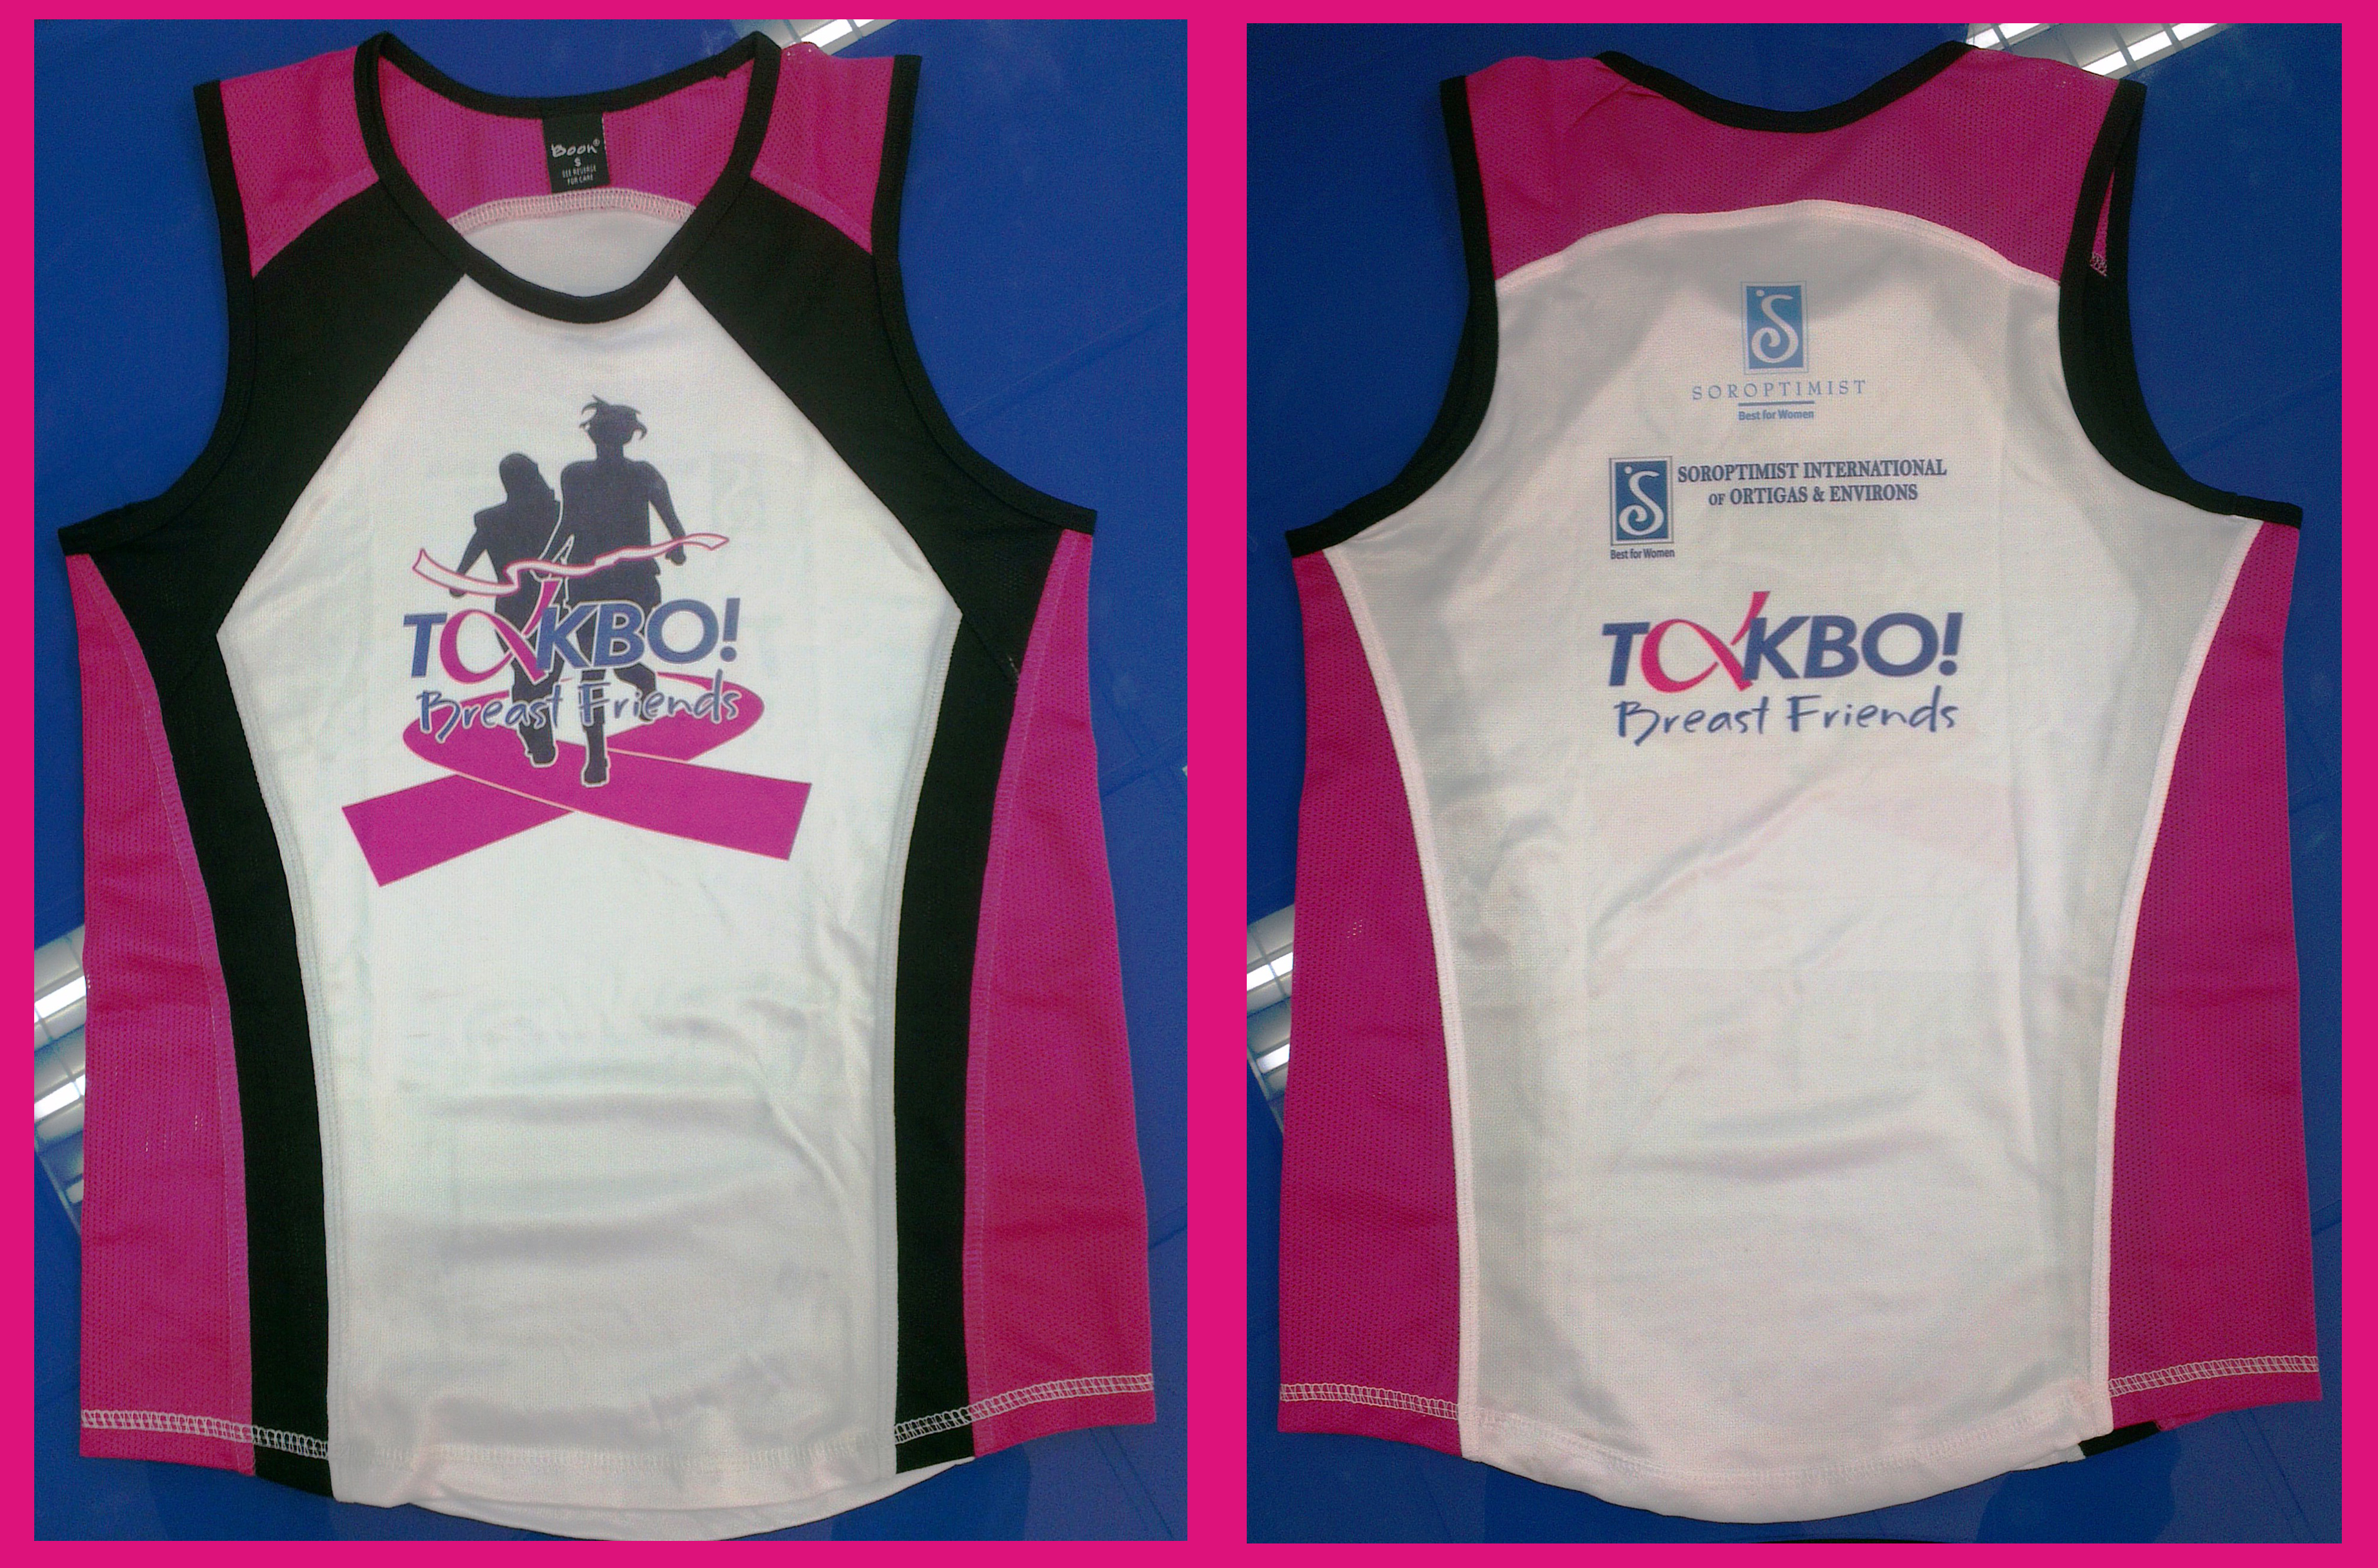 takbo-breast-friends-2013-singlet-design